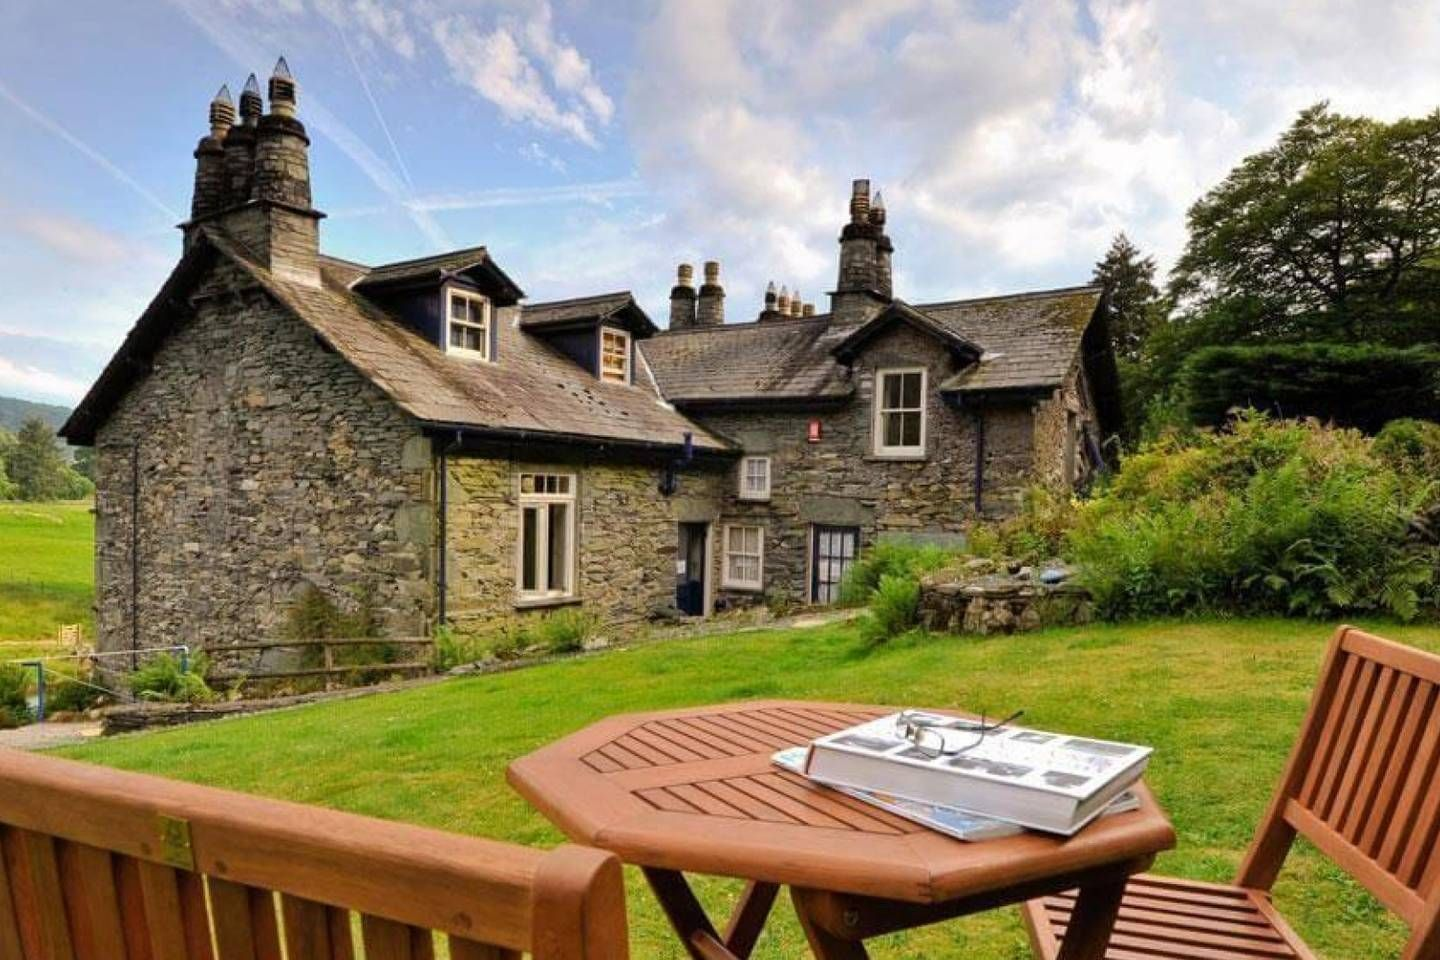 10 Airbnb Cottages For Rent In The English Countryside Hellogiggles Cottage Cottage Garden Vacation Cottage